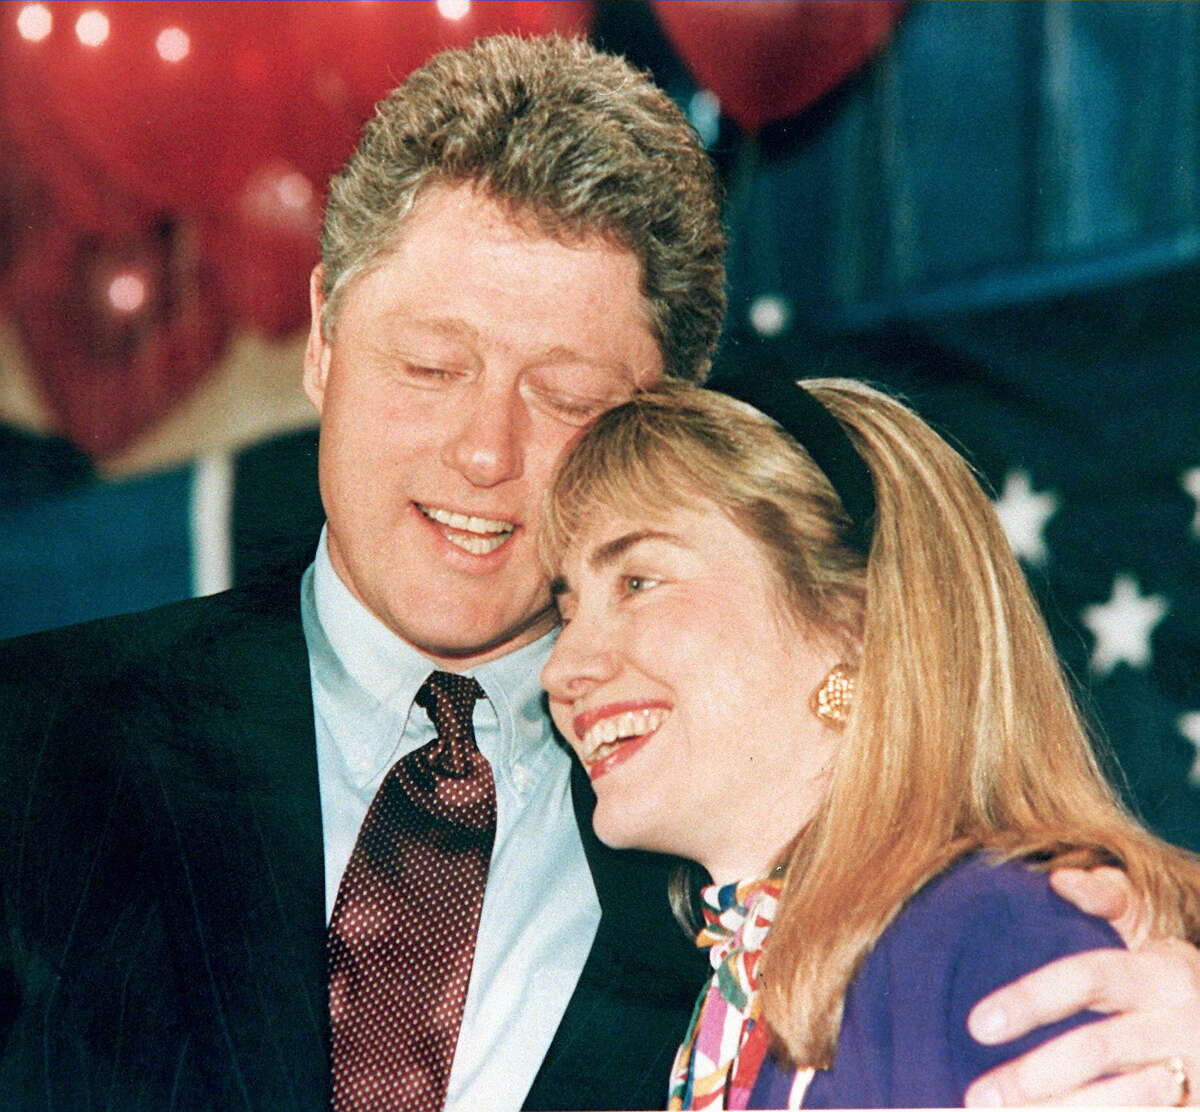 A 1992 photo shows Bill and Hillary Clinton embracing.